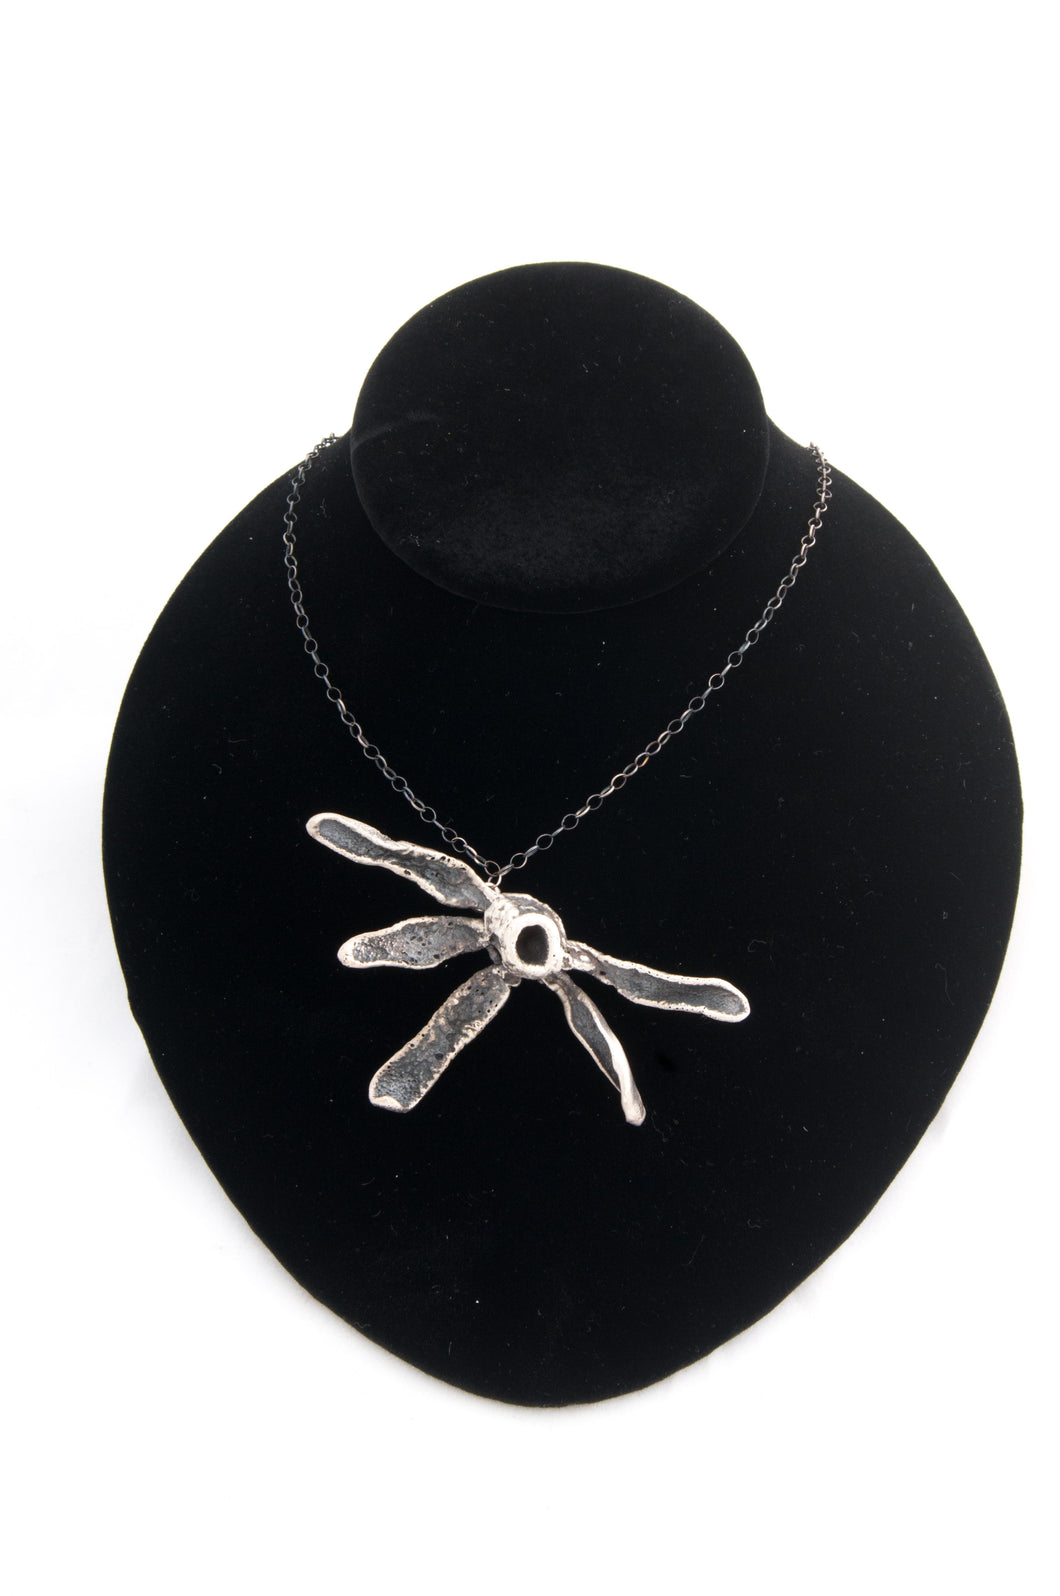 5 Petal Flower LS16 - Necklaces - Cerrillos Station | Fine Art Gallery, Native American Jewelry & Shop